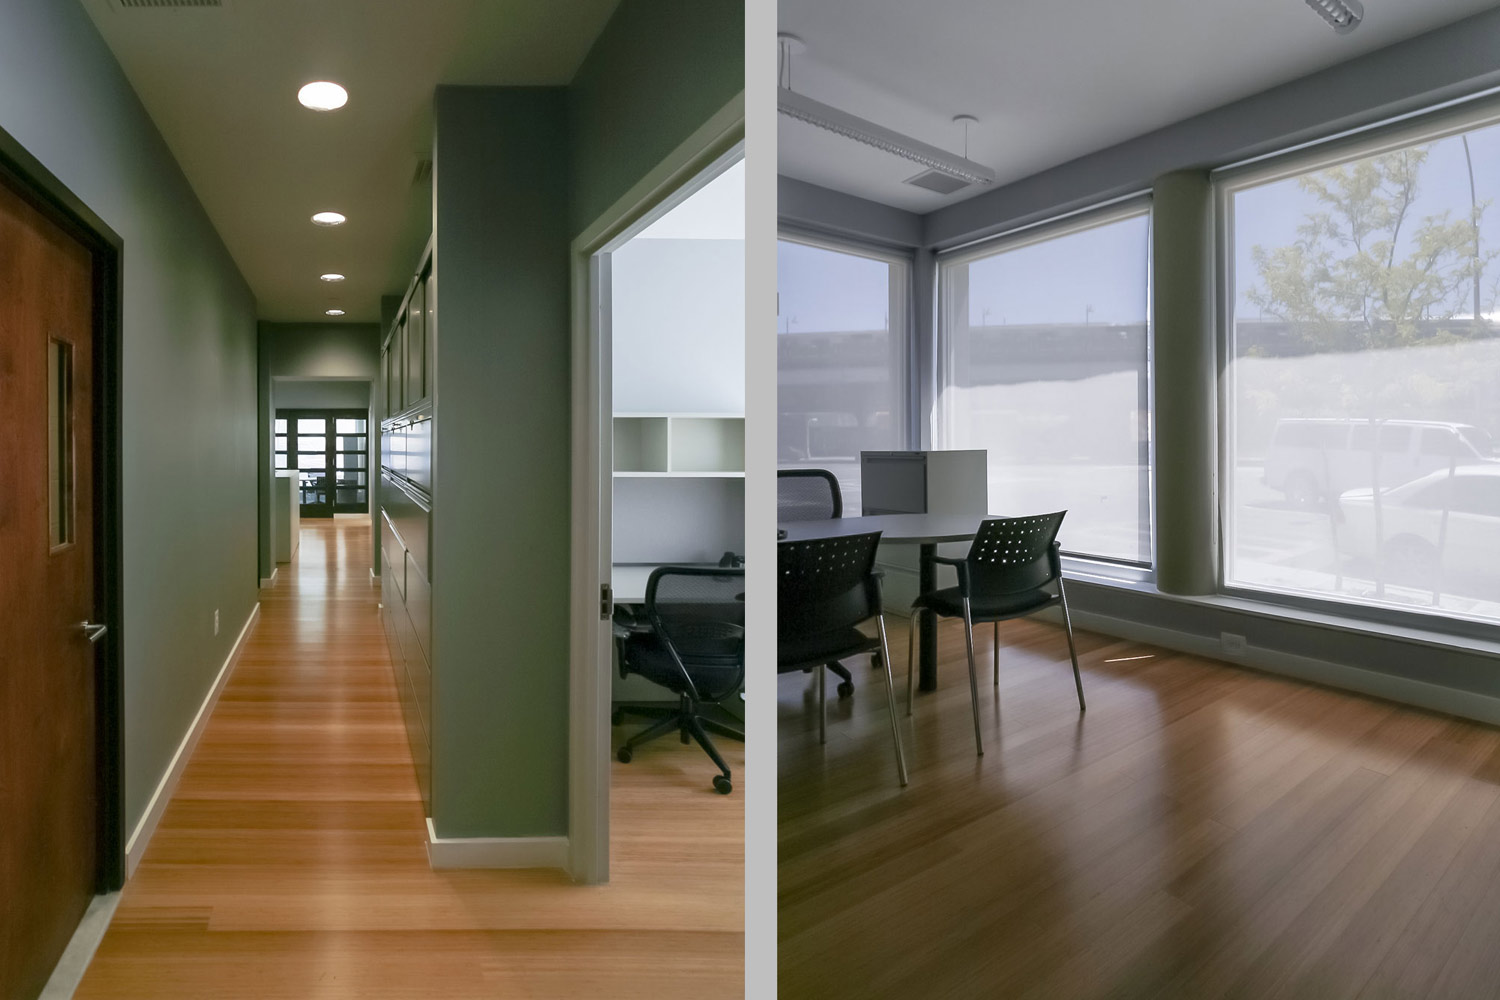 Support facilities for Fox Point tenants include ground floor social service offices.